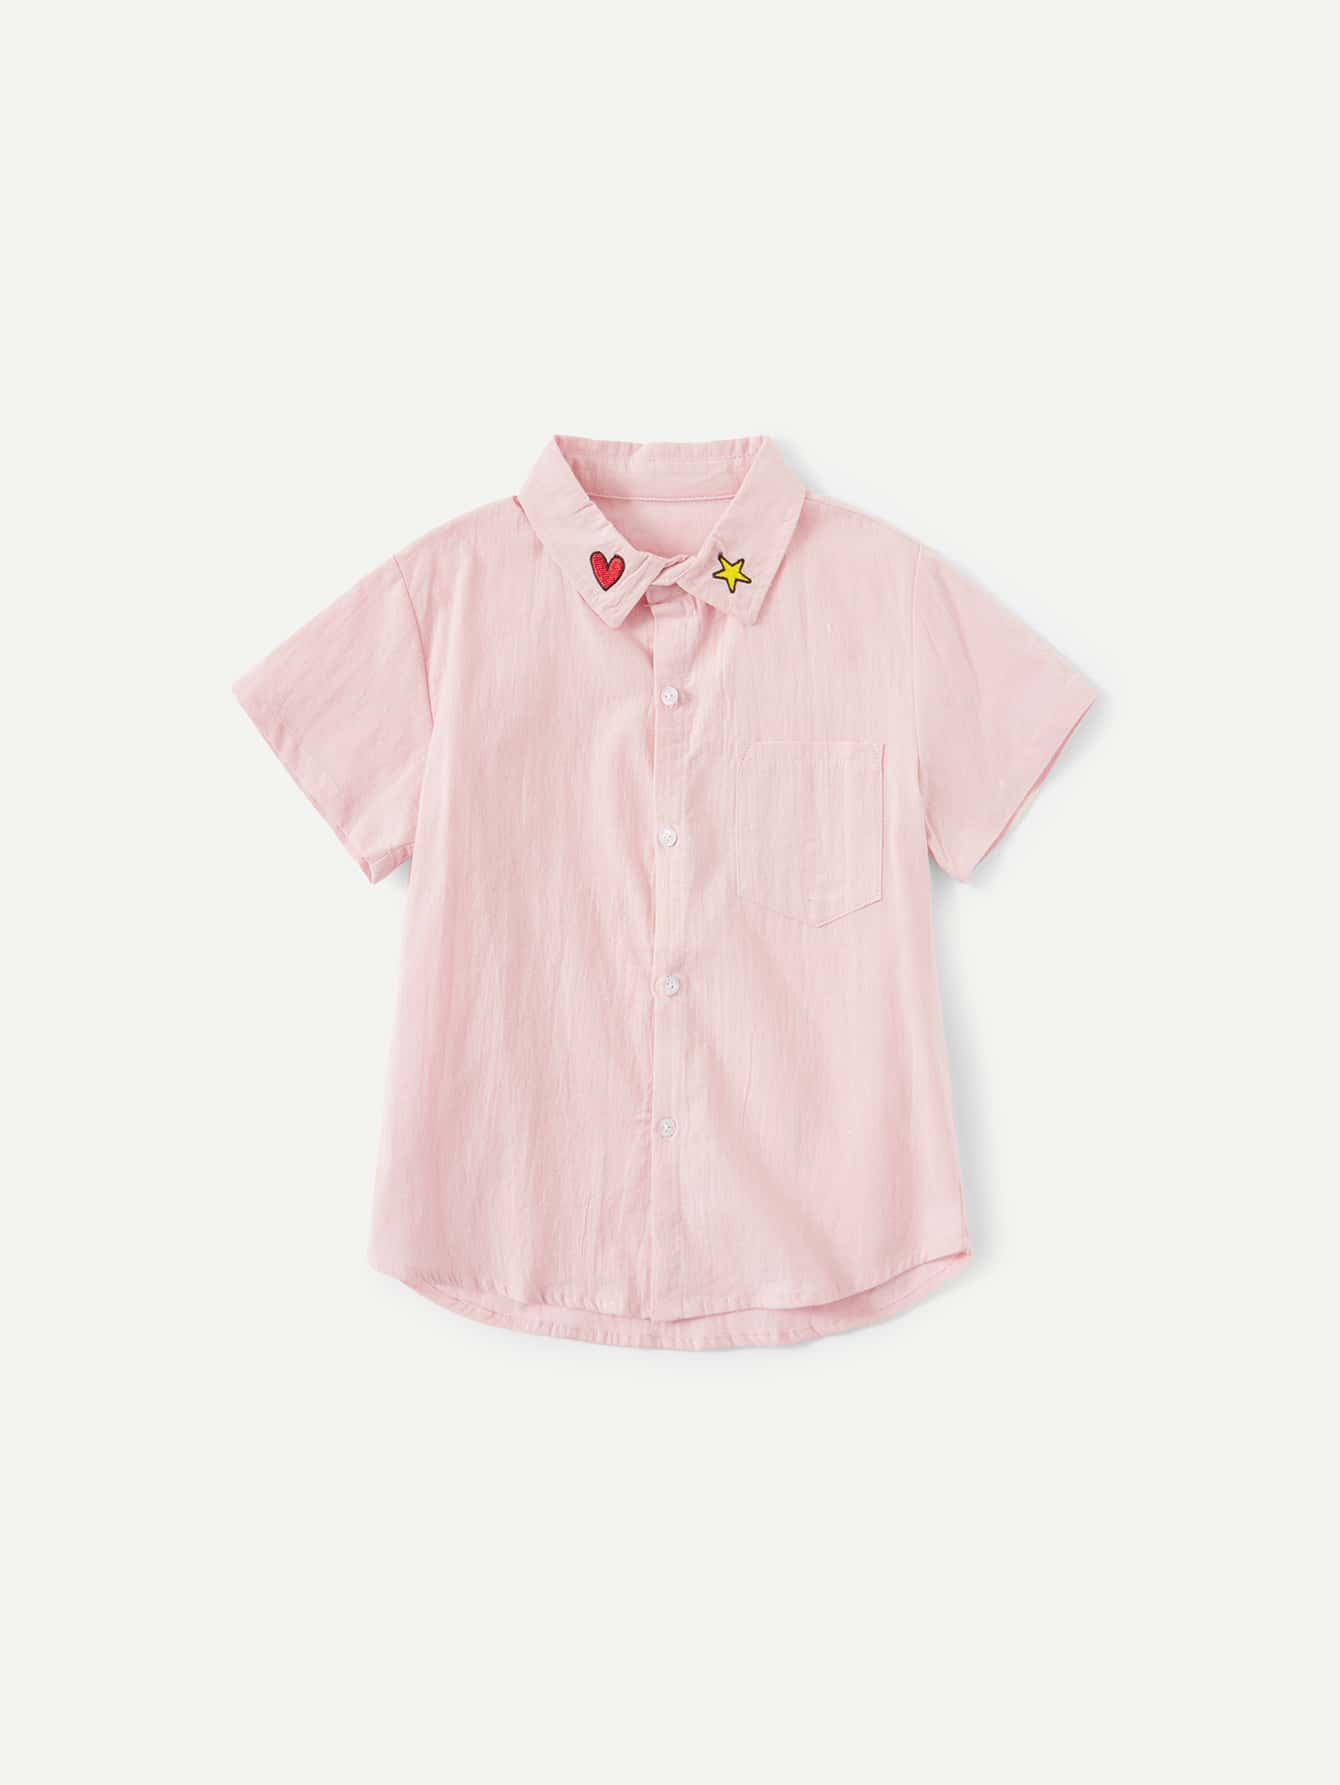 Kids Star And Heart Embroidery Blouse kids star and letter print striped blouse